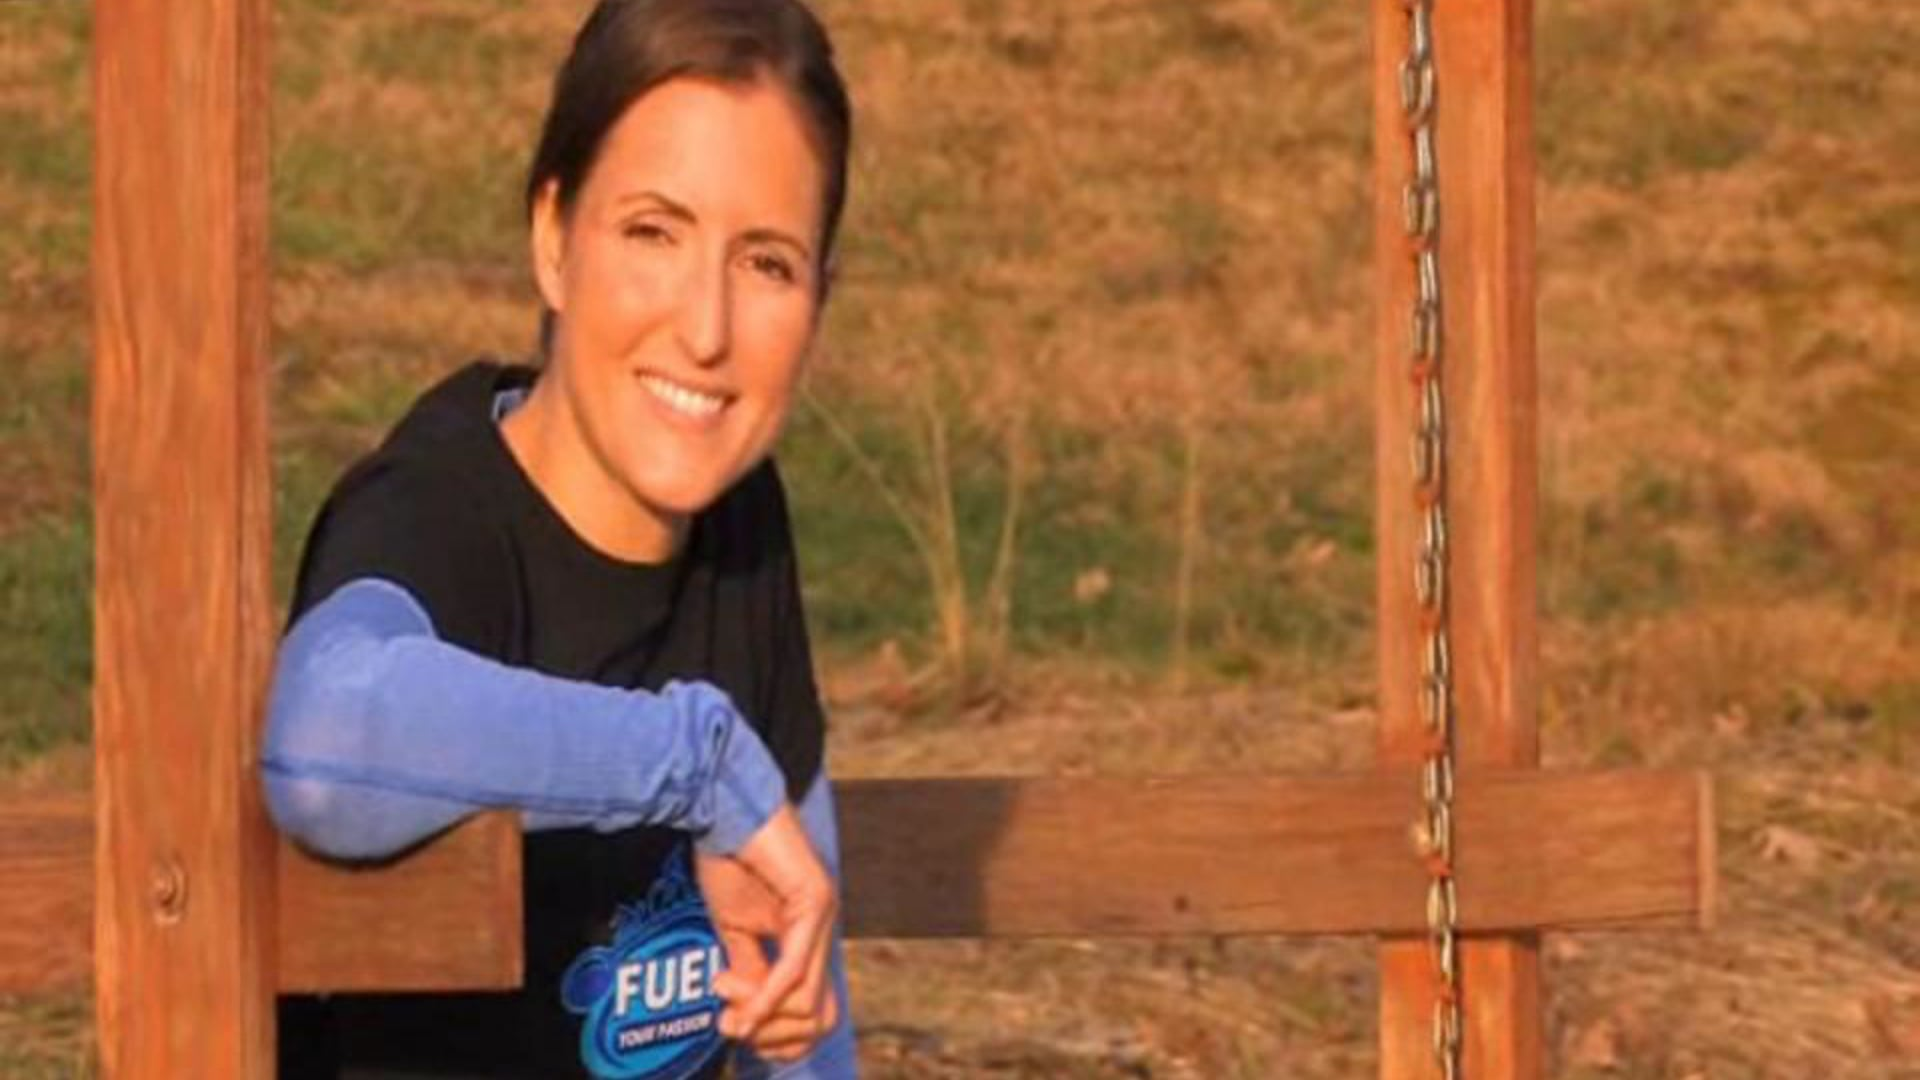 Meet Kim and Fuel Your Passion